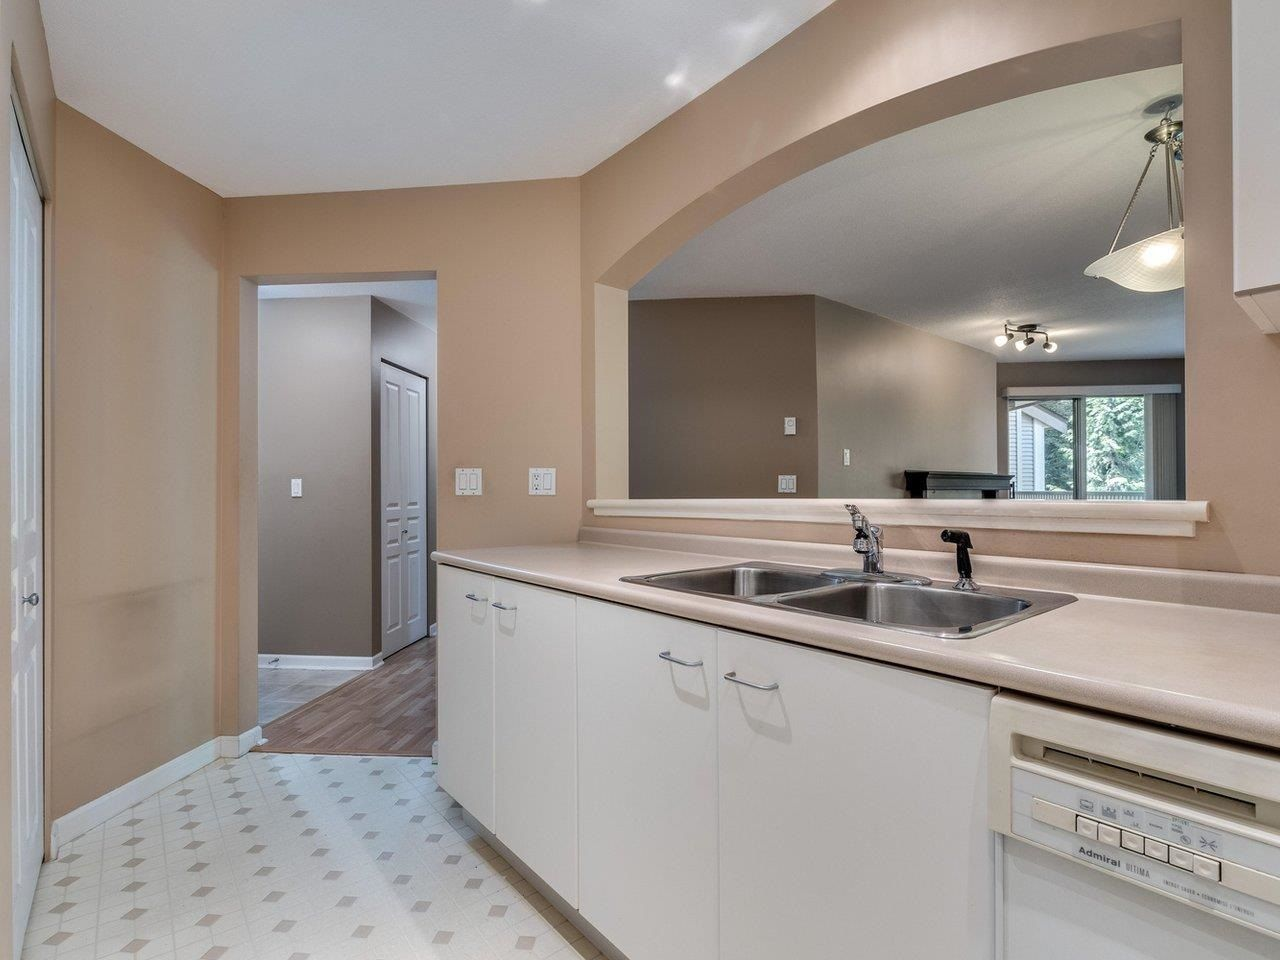 """Photo 17: Photos: 320 1252 TOWN CENTRE Boulevard in Coquitlam: Canyon Springs Condo for sale in """"The Kennedy"""" : MLS®# R2595291"""